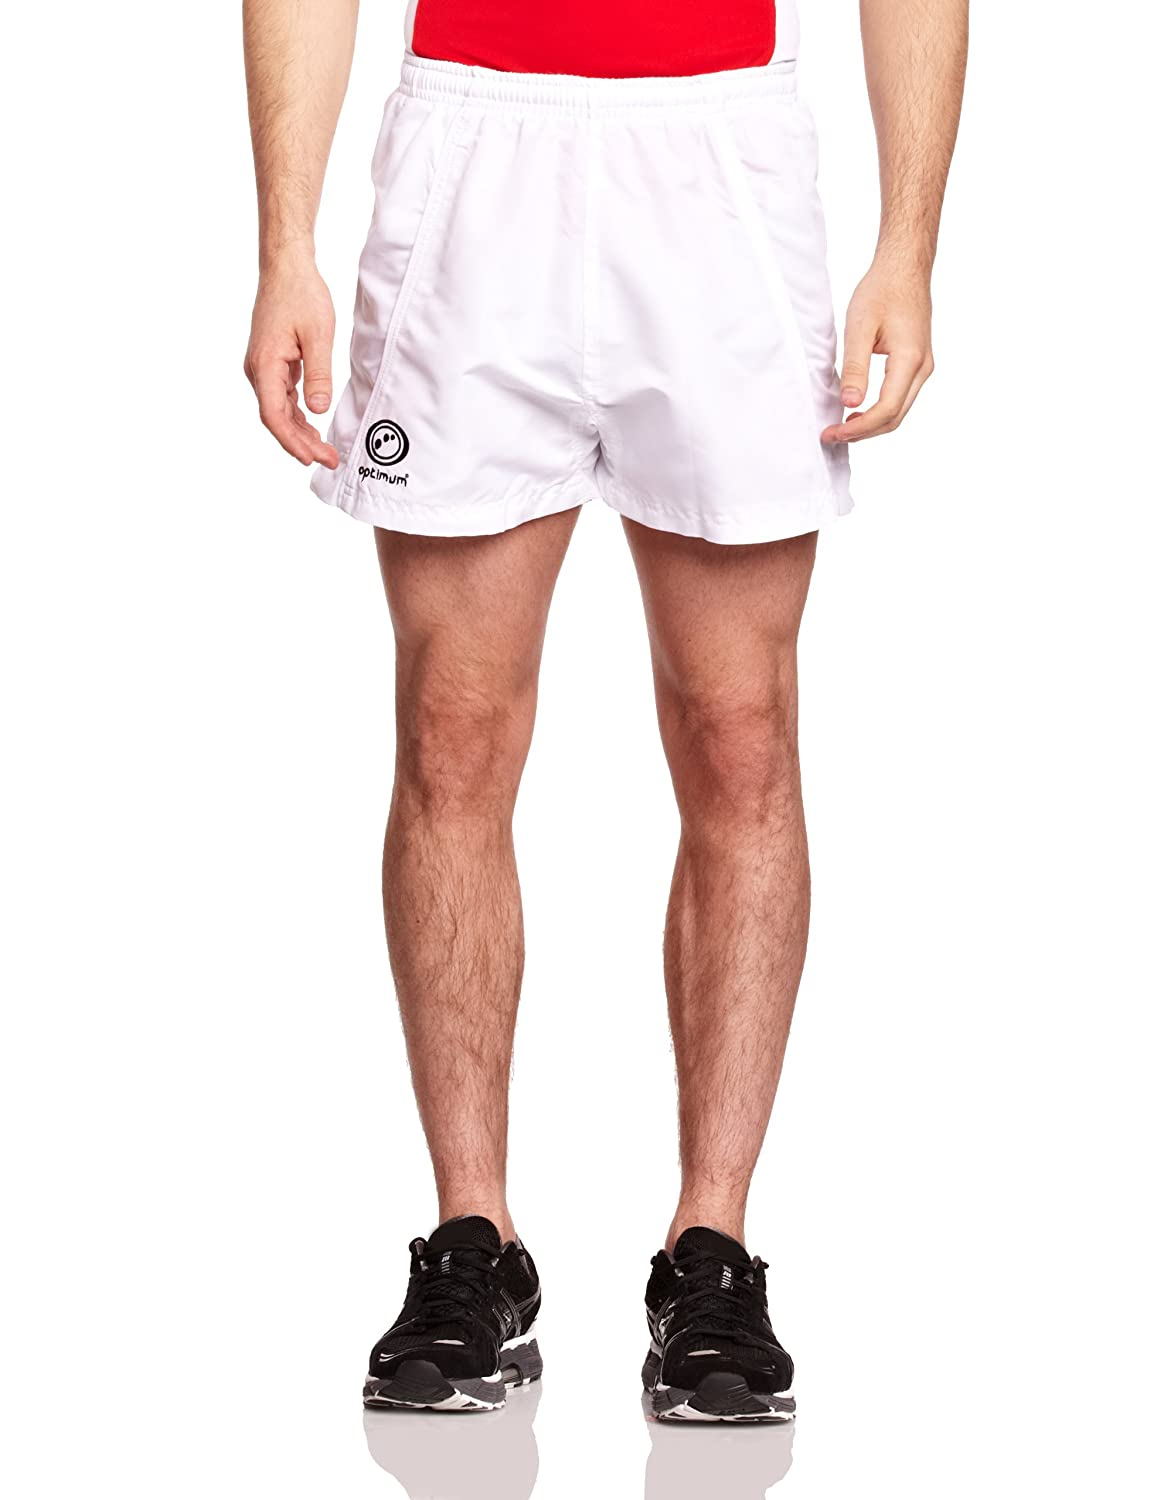 Optimum Wellington Herren-Shorts WSW42